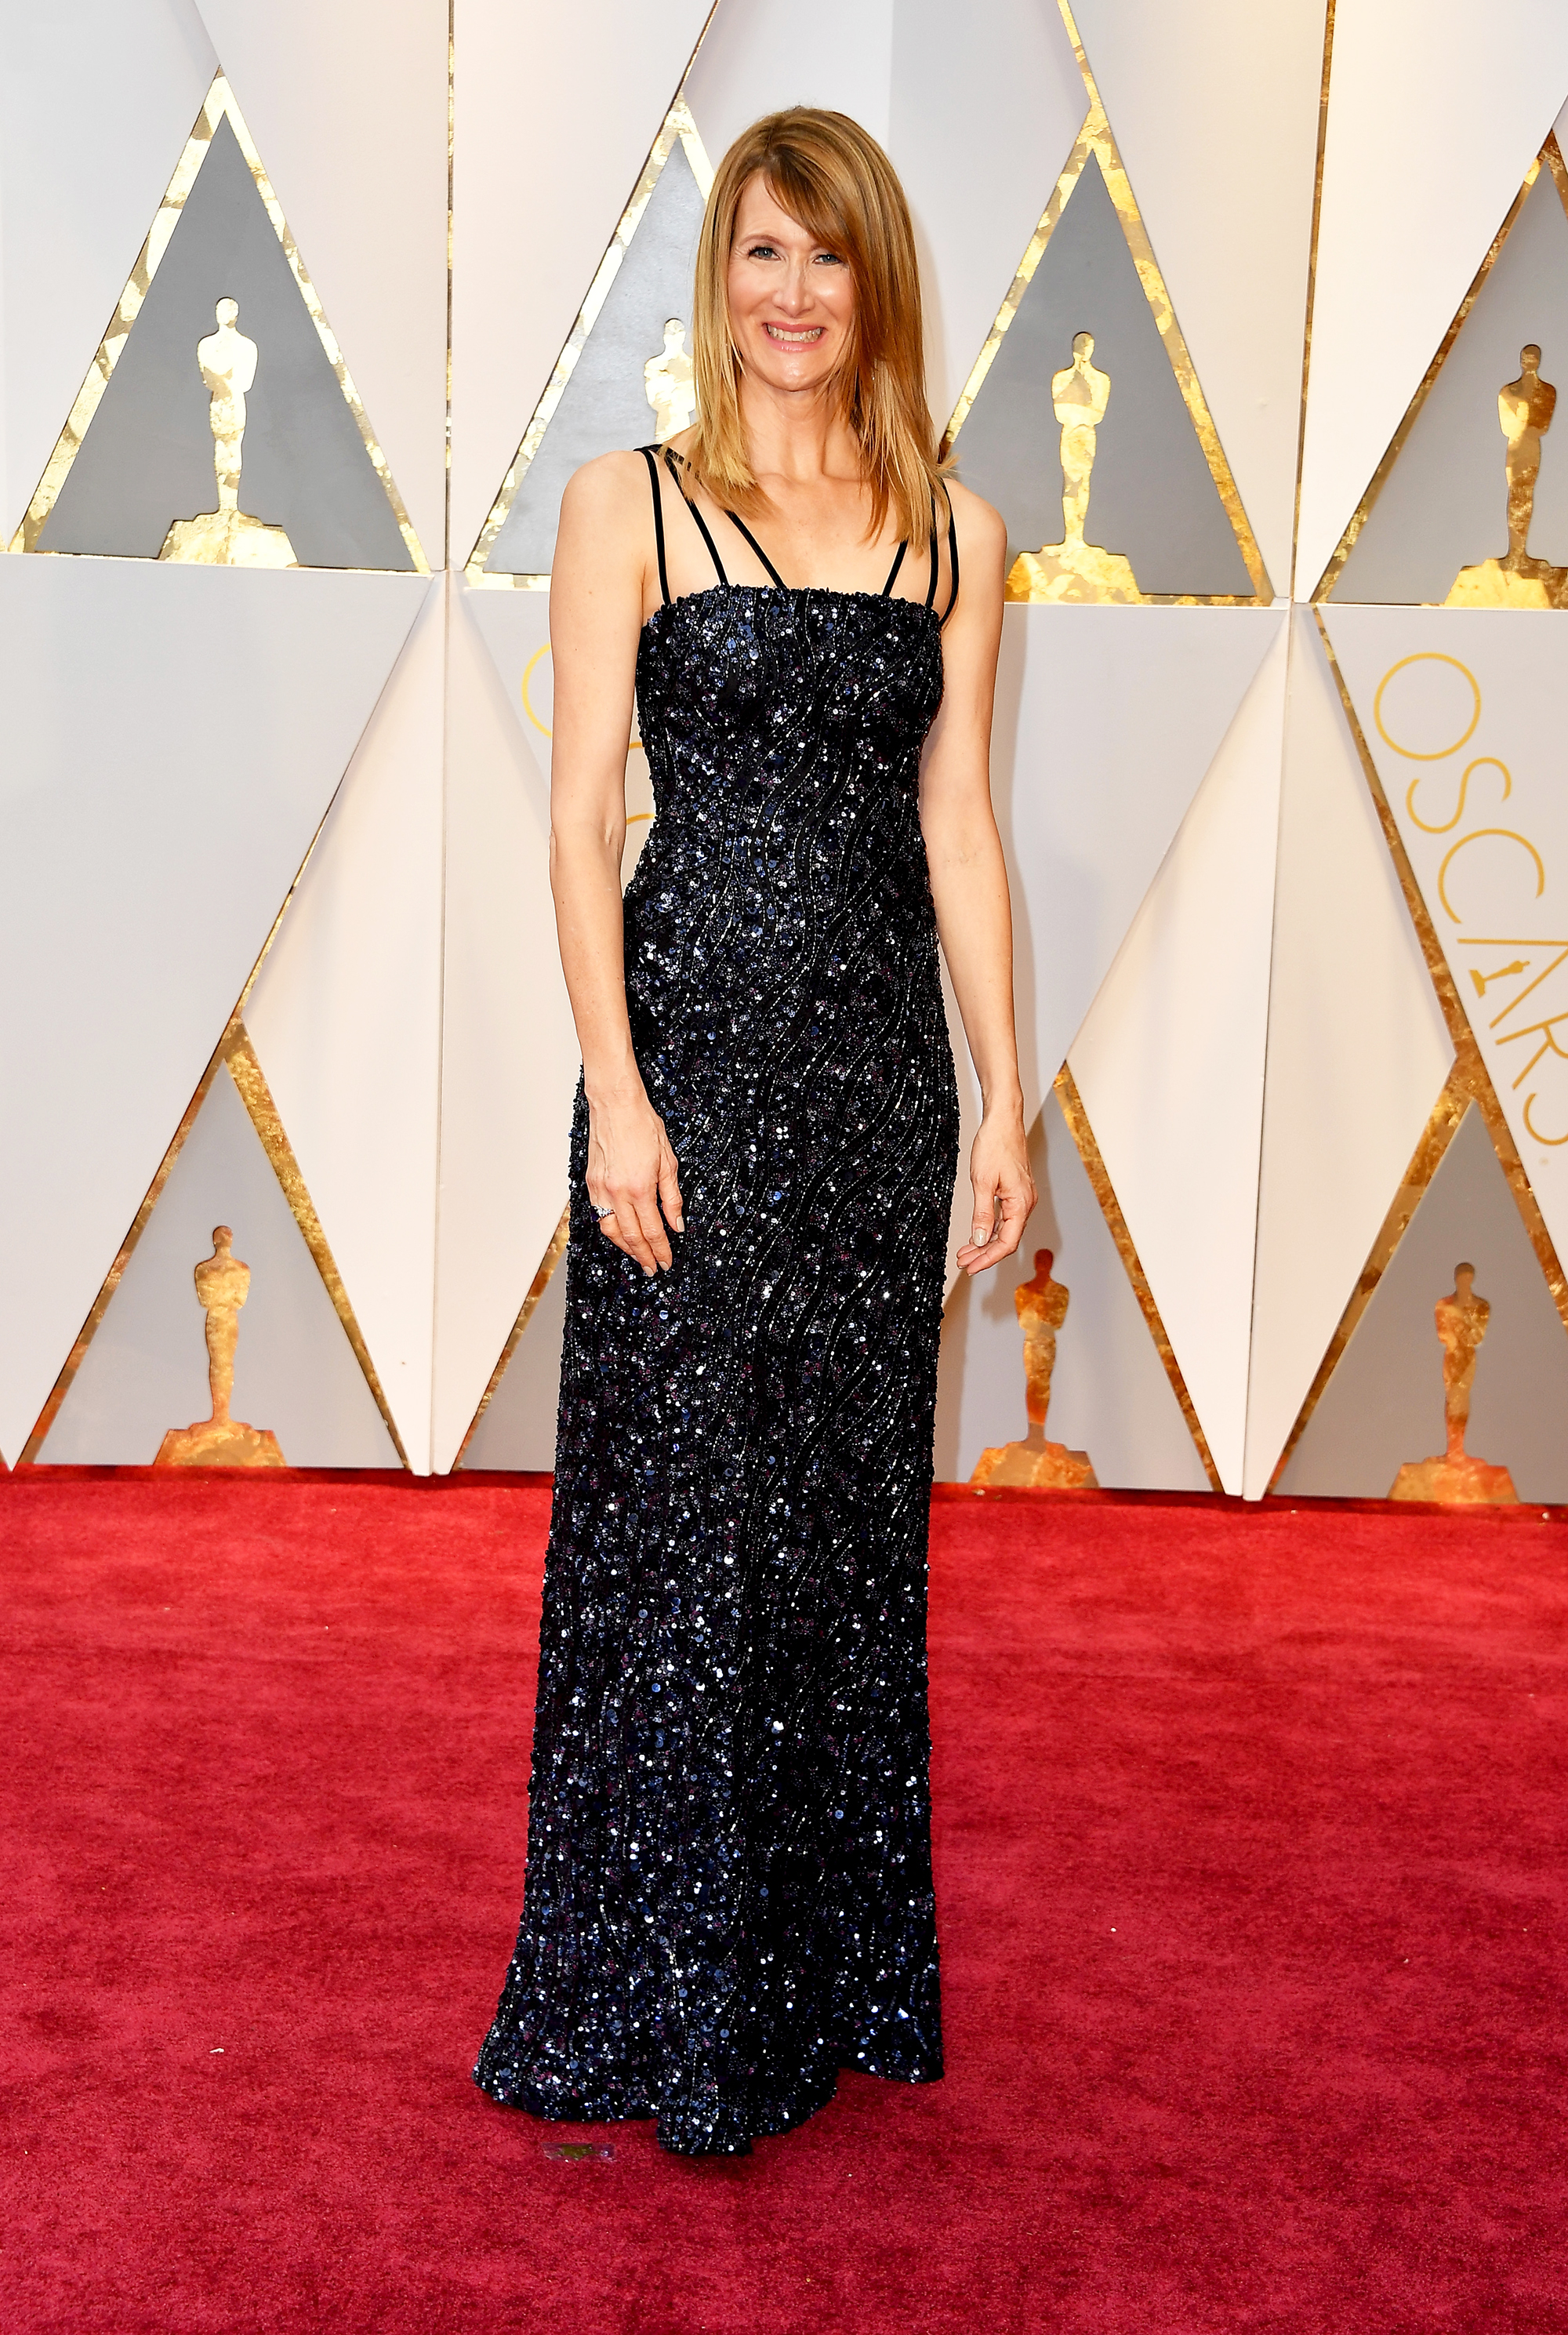 Laura Dern on the red carpet for the 89th Oscars, on Feb. 26, 2017 in Hollywood, Calif.